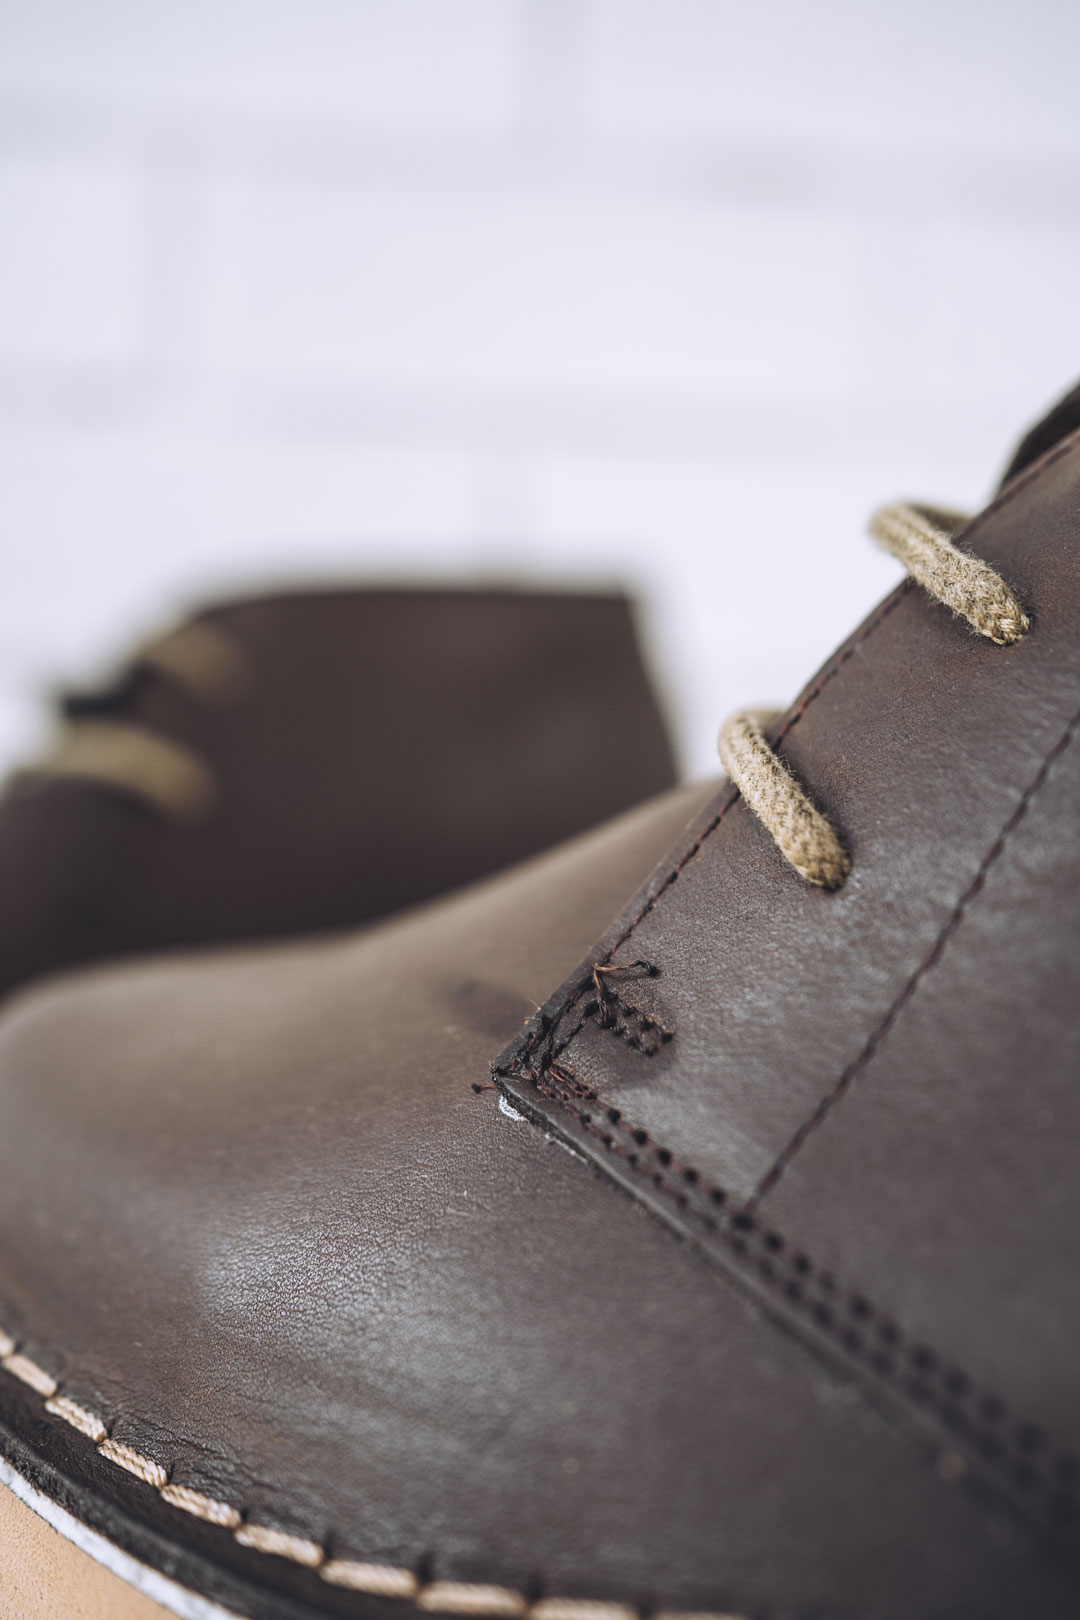 ankle boot with factory glue mark dark